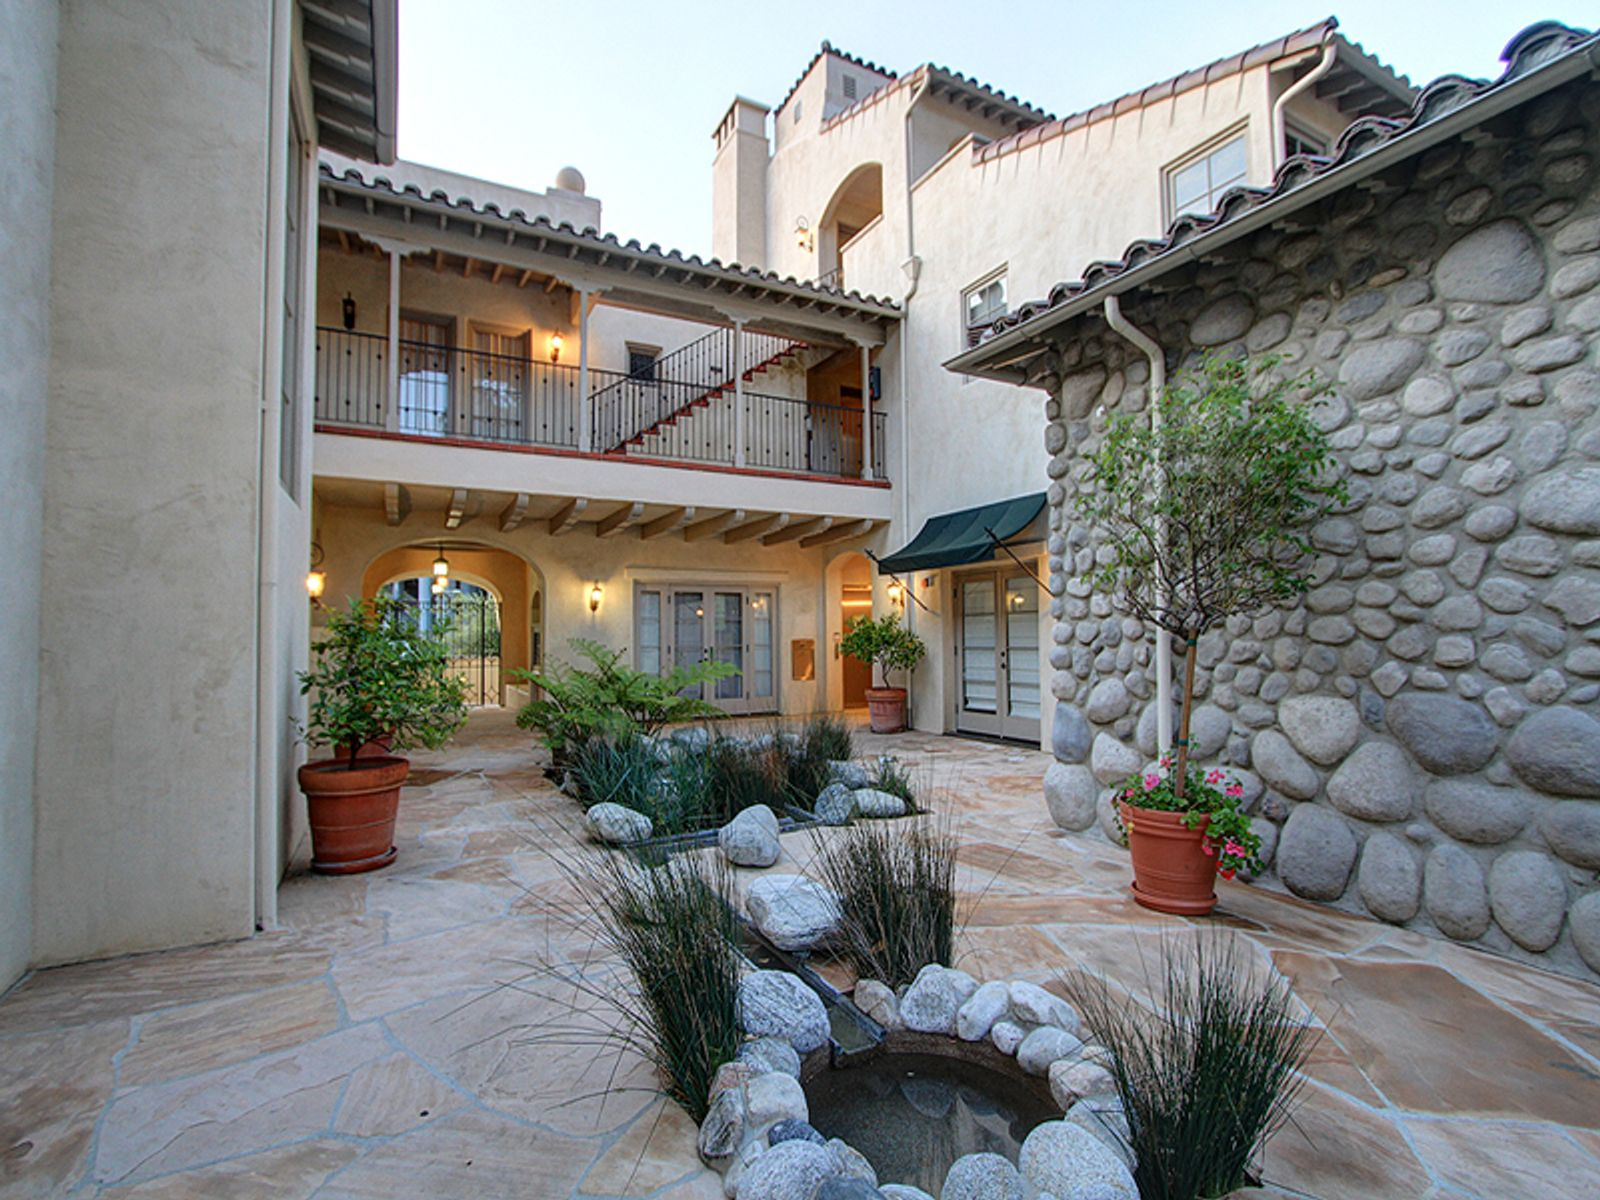 Arroyo View Pied-A-Terre